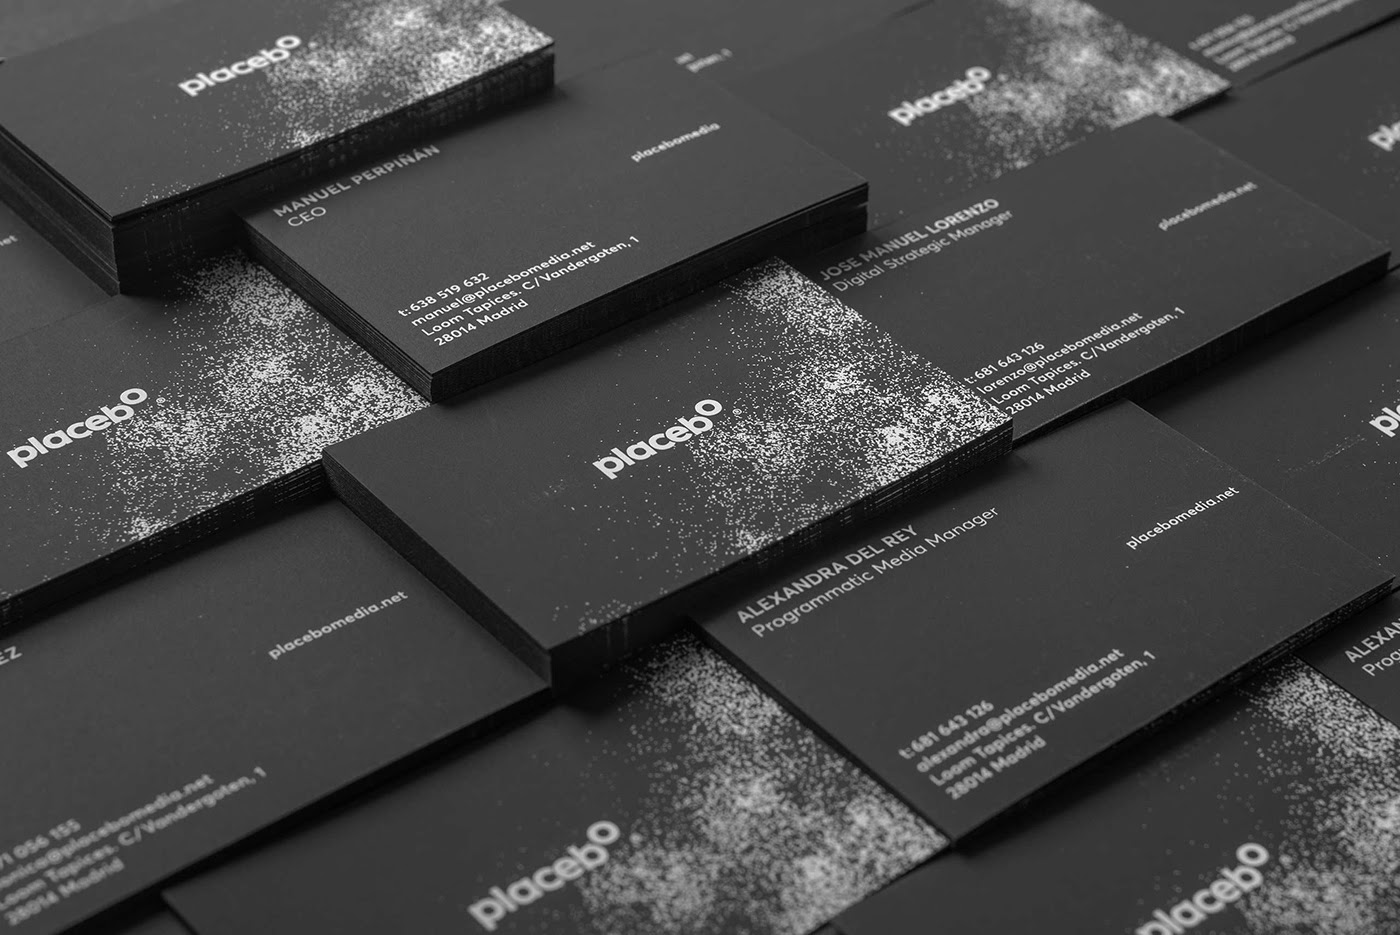 Placebo brand: cards